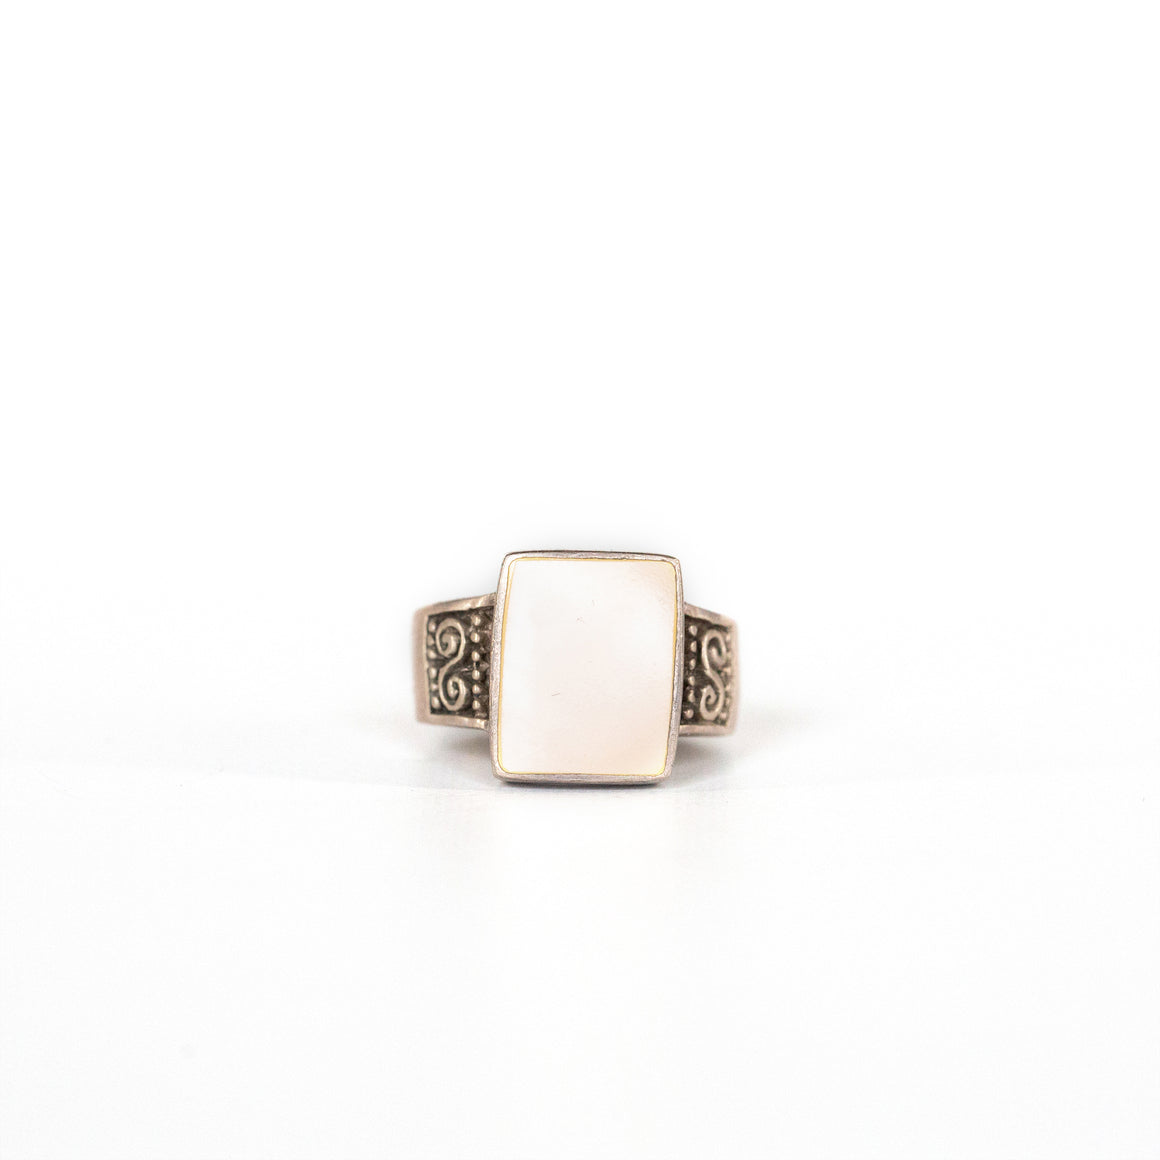 VINTAGE JEWELRY | MOTHER OF PEARL SQUARE STERLING RING (SIZE 7.5)